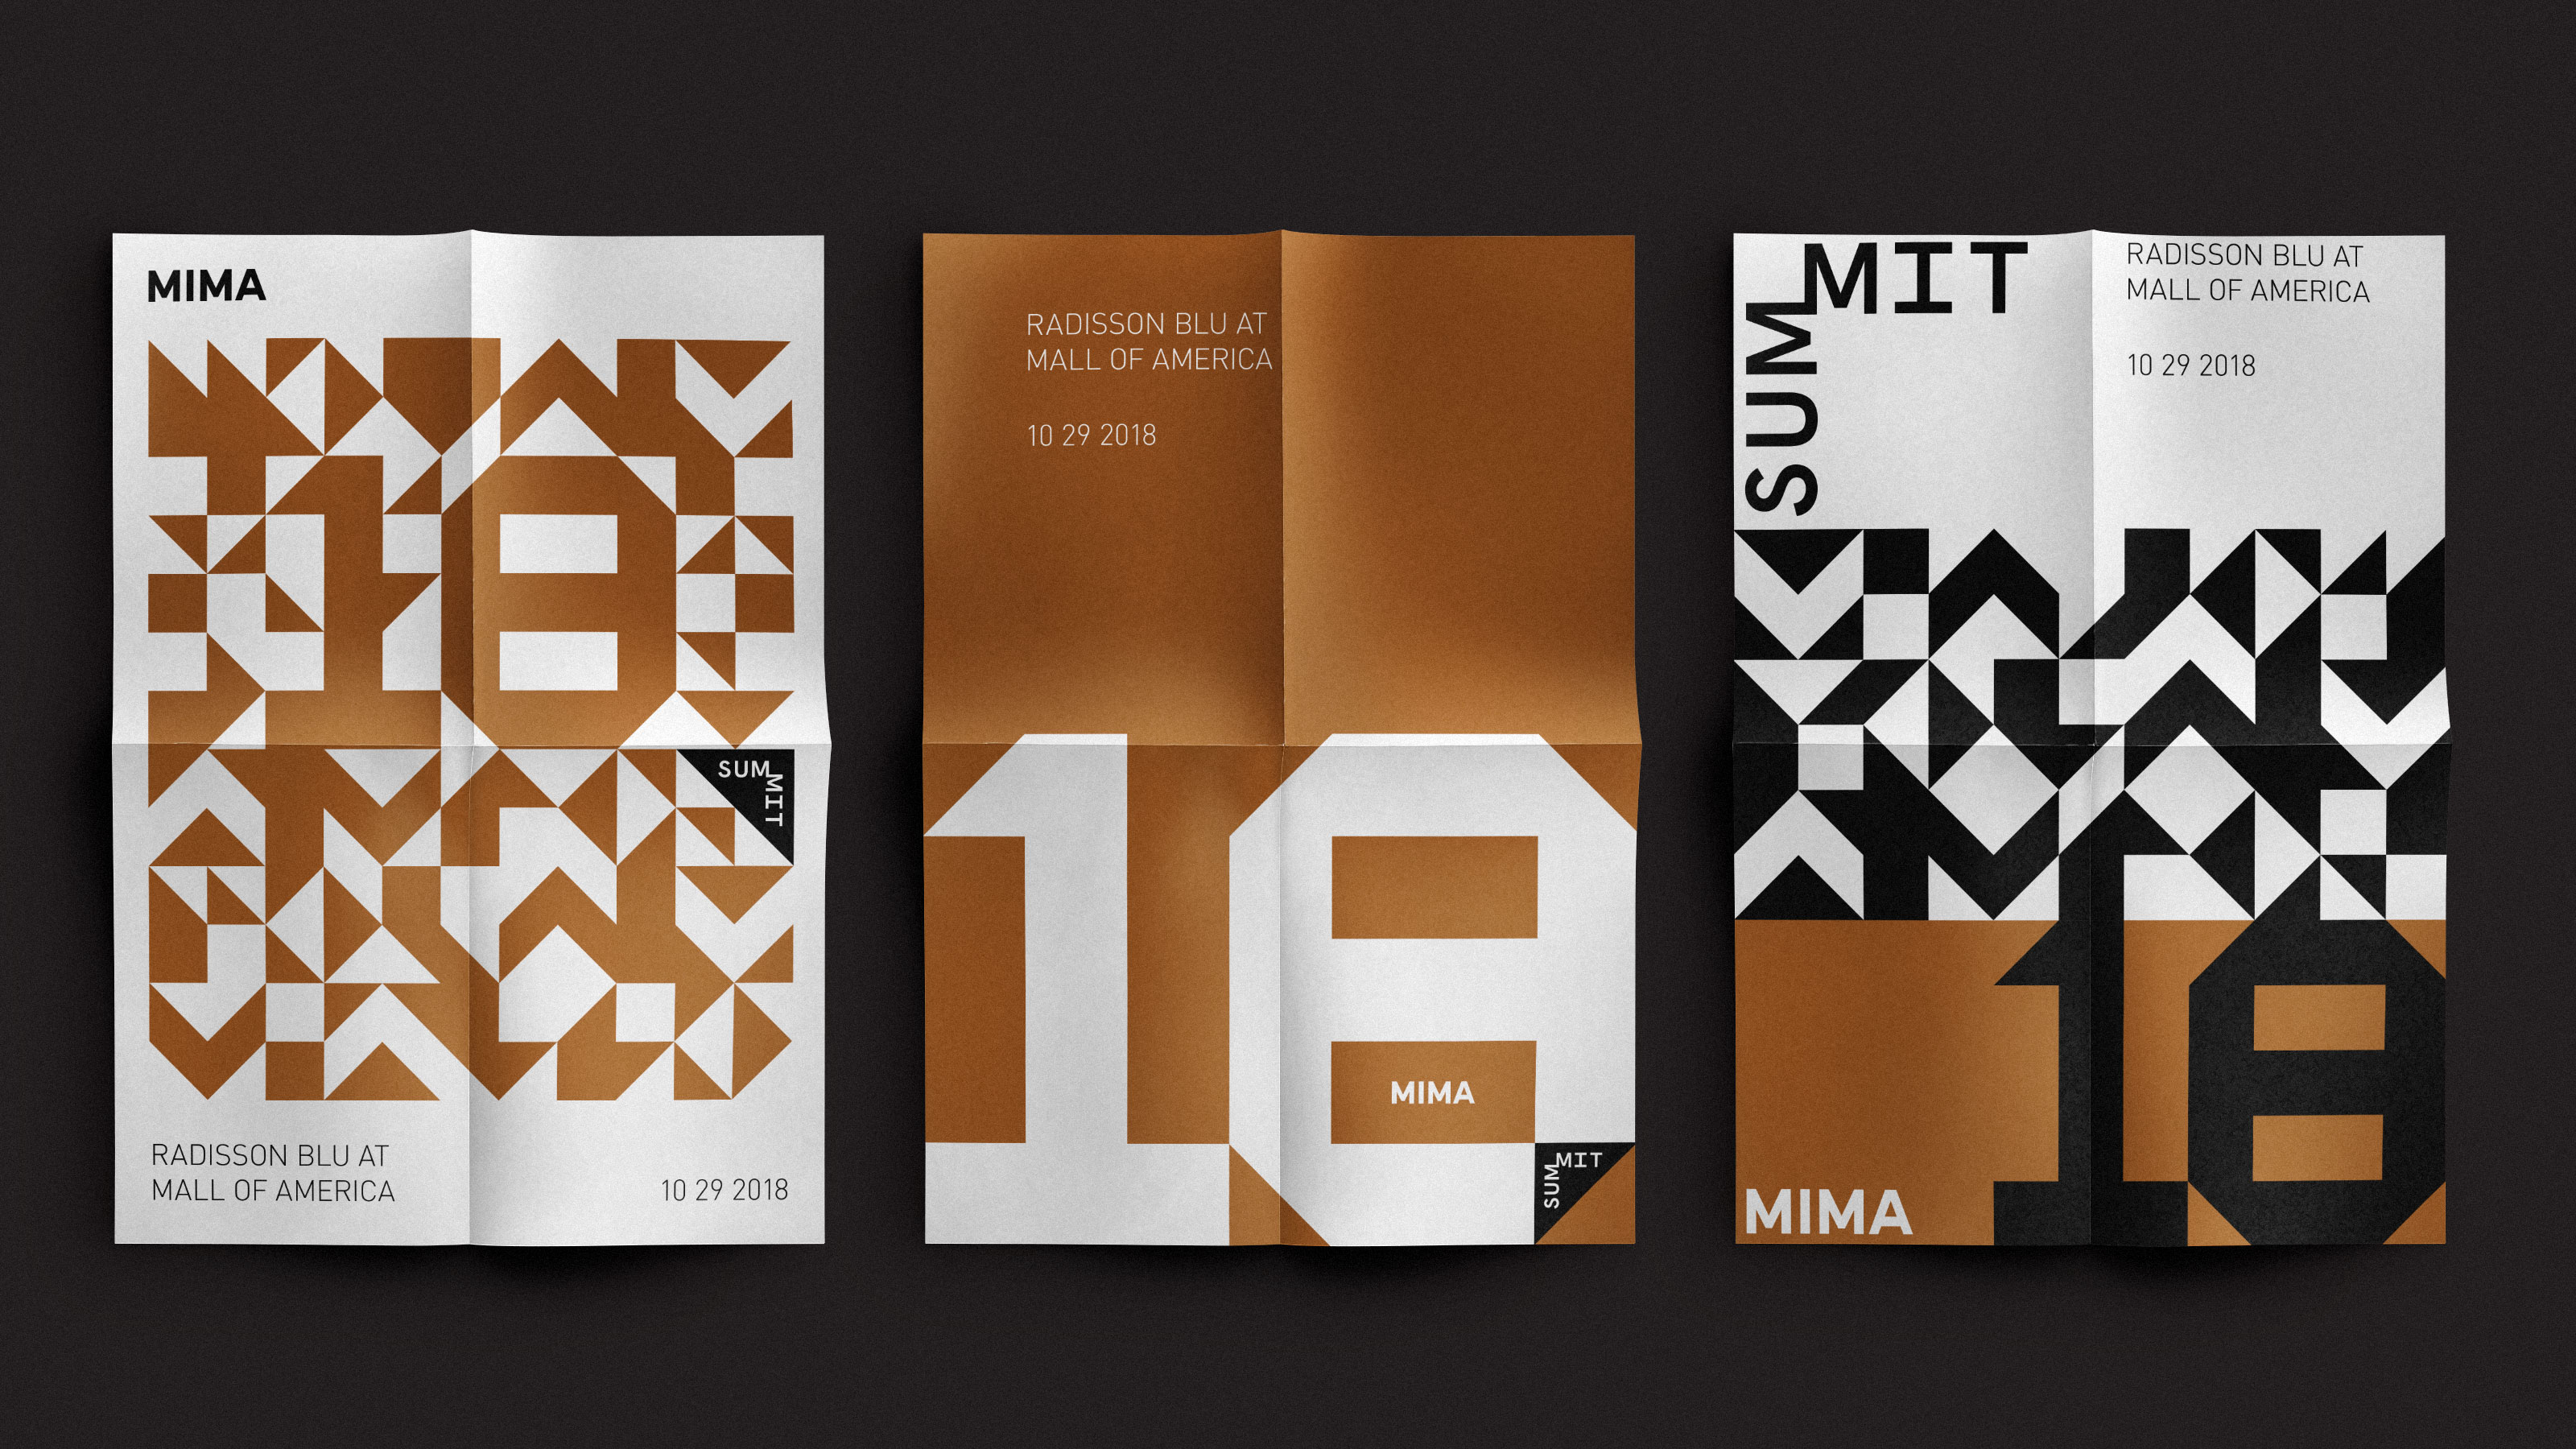 MIMA_Summit_2018_Posters_1